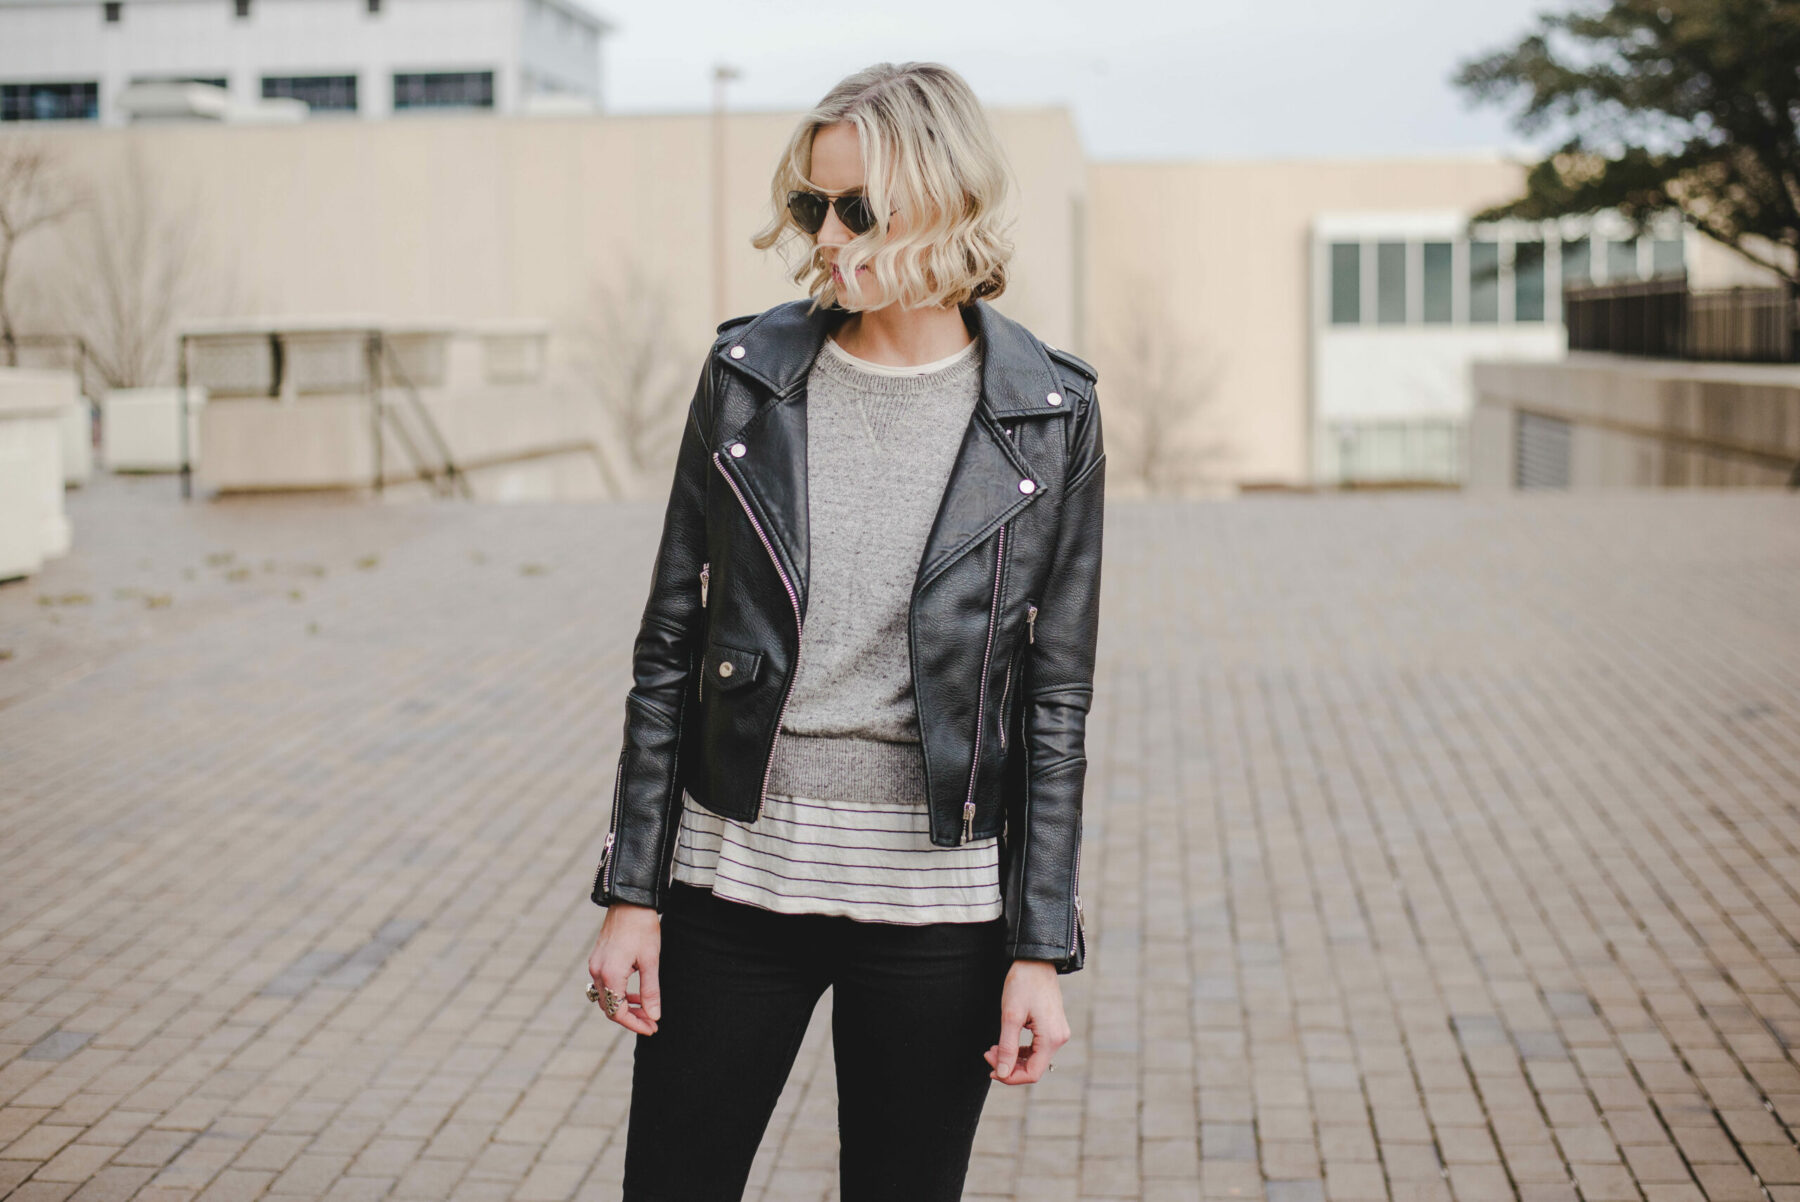 When to wear a leather jacket